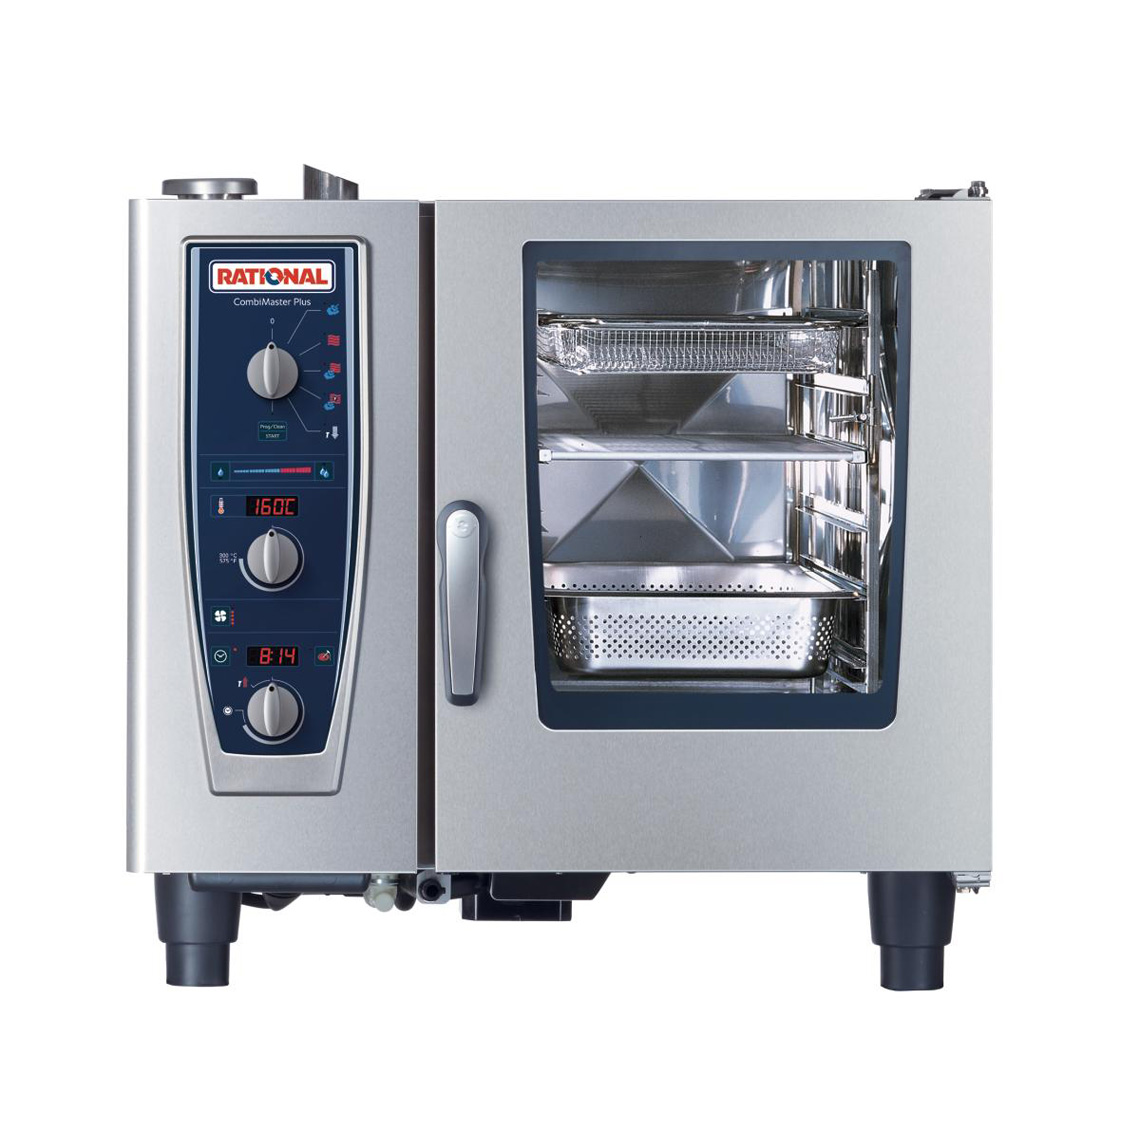 RATIONAL B619206.19E202 combi oven, gas